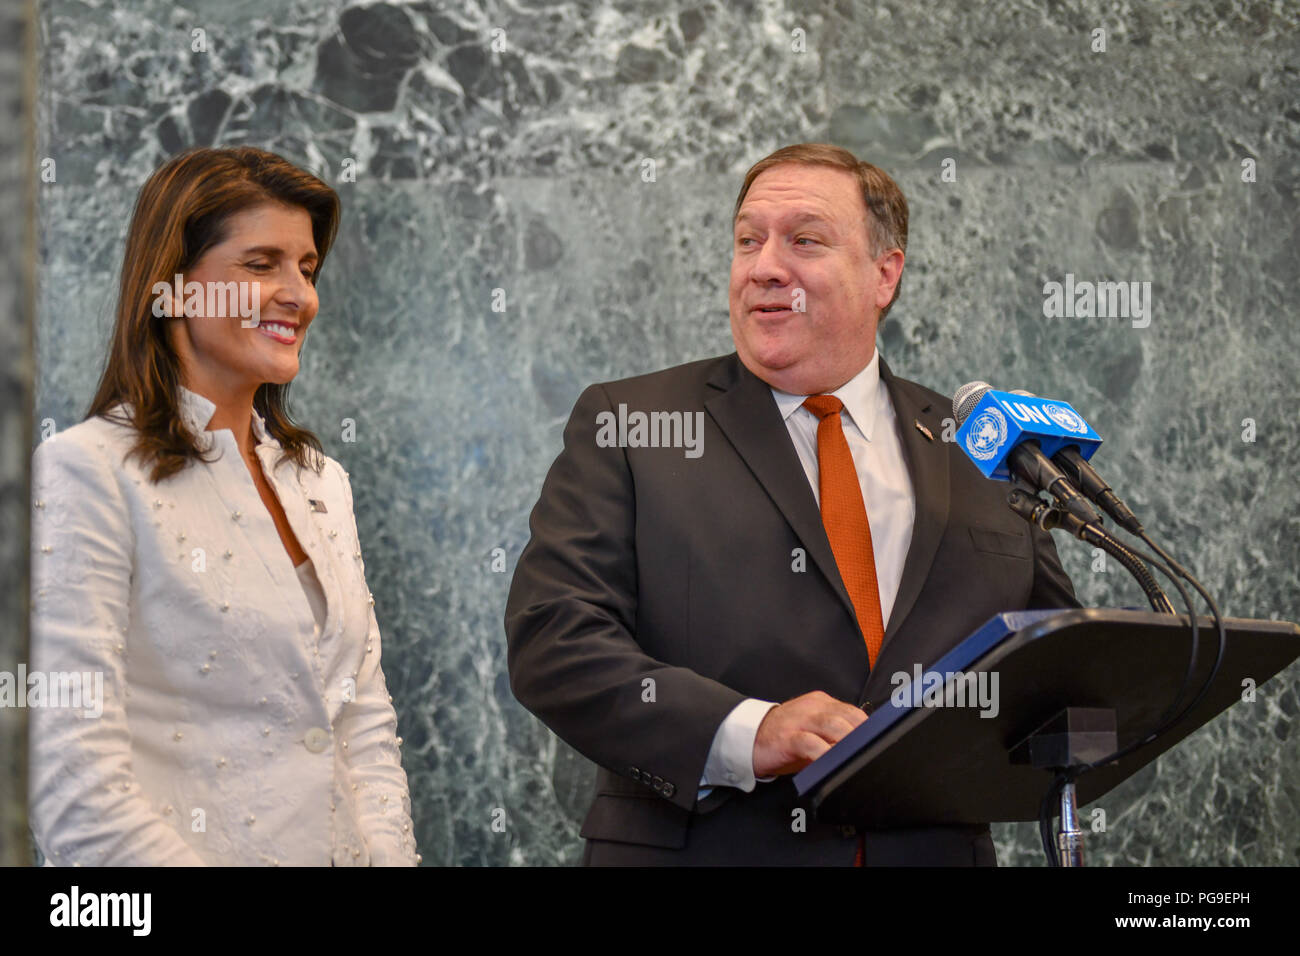 U.S. Secretary of State Michael R. Pompeo  and U.S. Permanent Representative to the United Nations Nikki Haley hold a joint press availability in New York, New York on July 20, 2018. - Stock Image